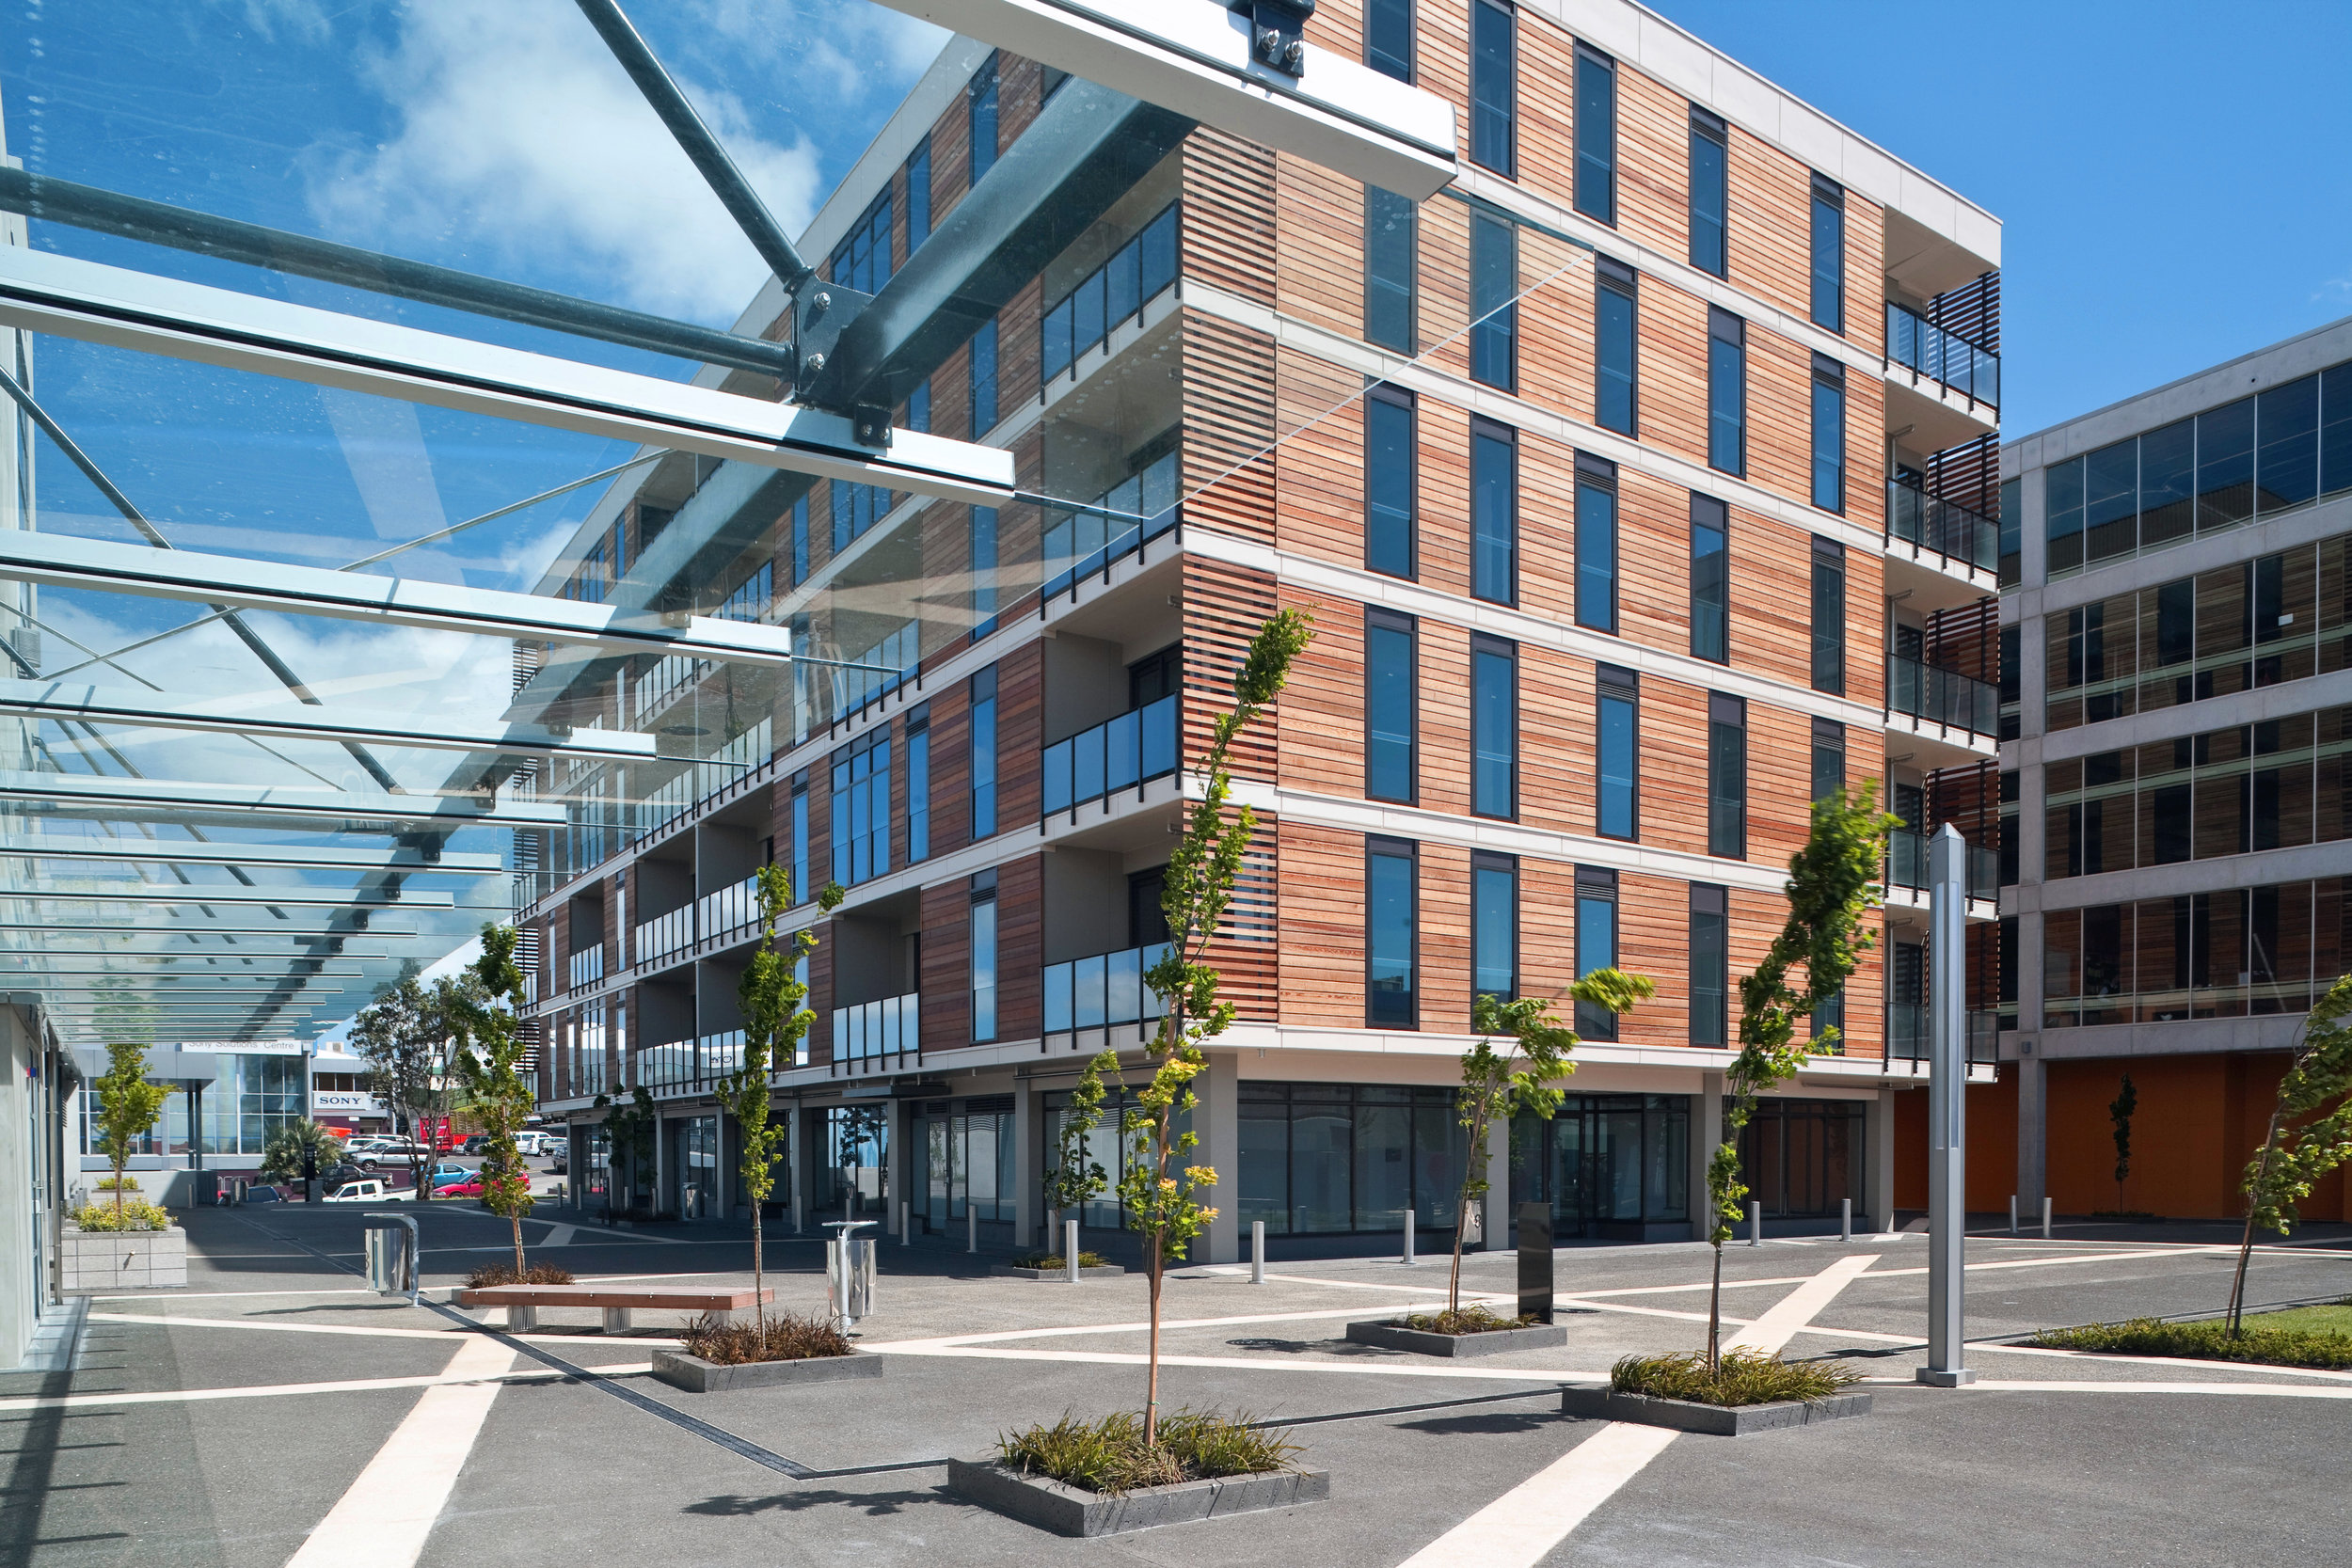 8 Nugent Street - Offices & Plaza   This large, mixed use development by S&T has created a new urban precinct in Newmarket, Auckland.  Pedestrians are also catered for within the plaza surrounded by apartments, retail and office spaces.